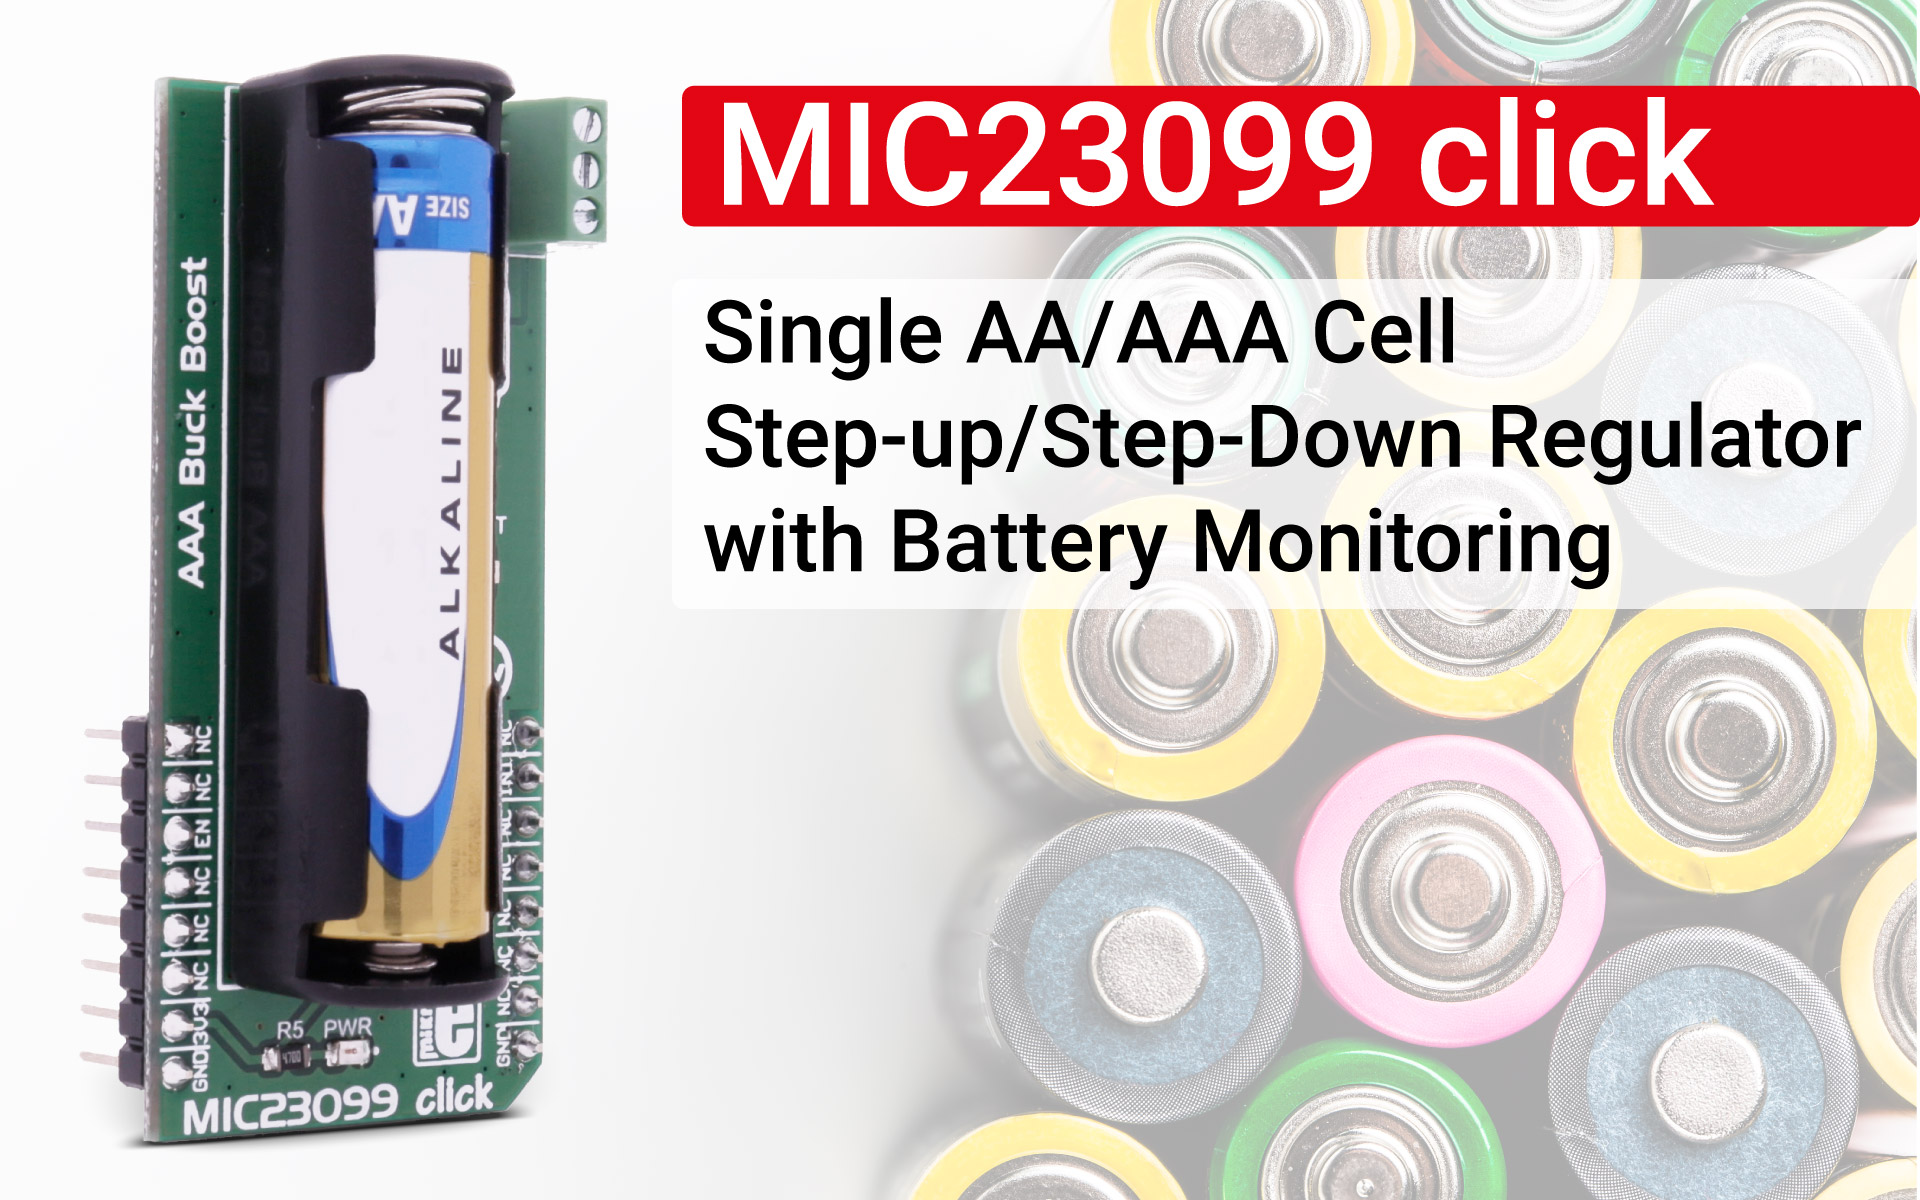 MIC23099 click - Single AA/AAA Cell Step-up/Step-Down Regulator with Battery Monitoring